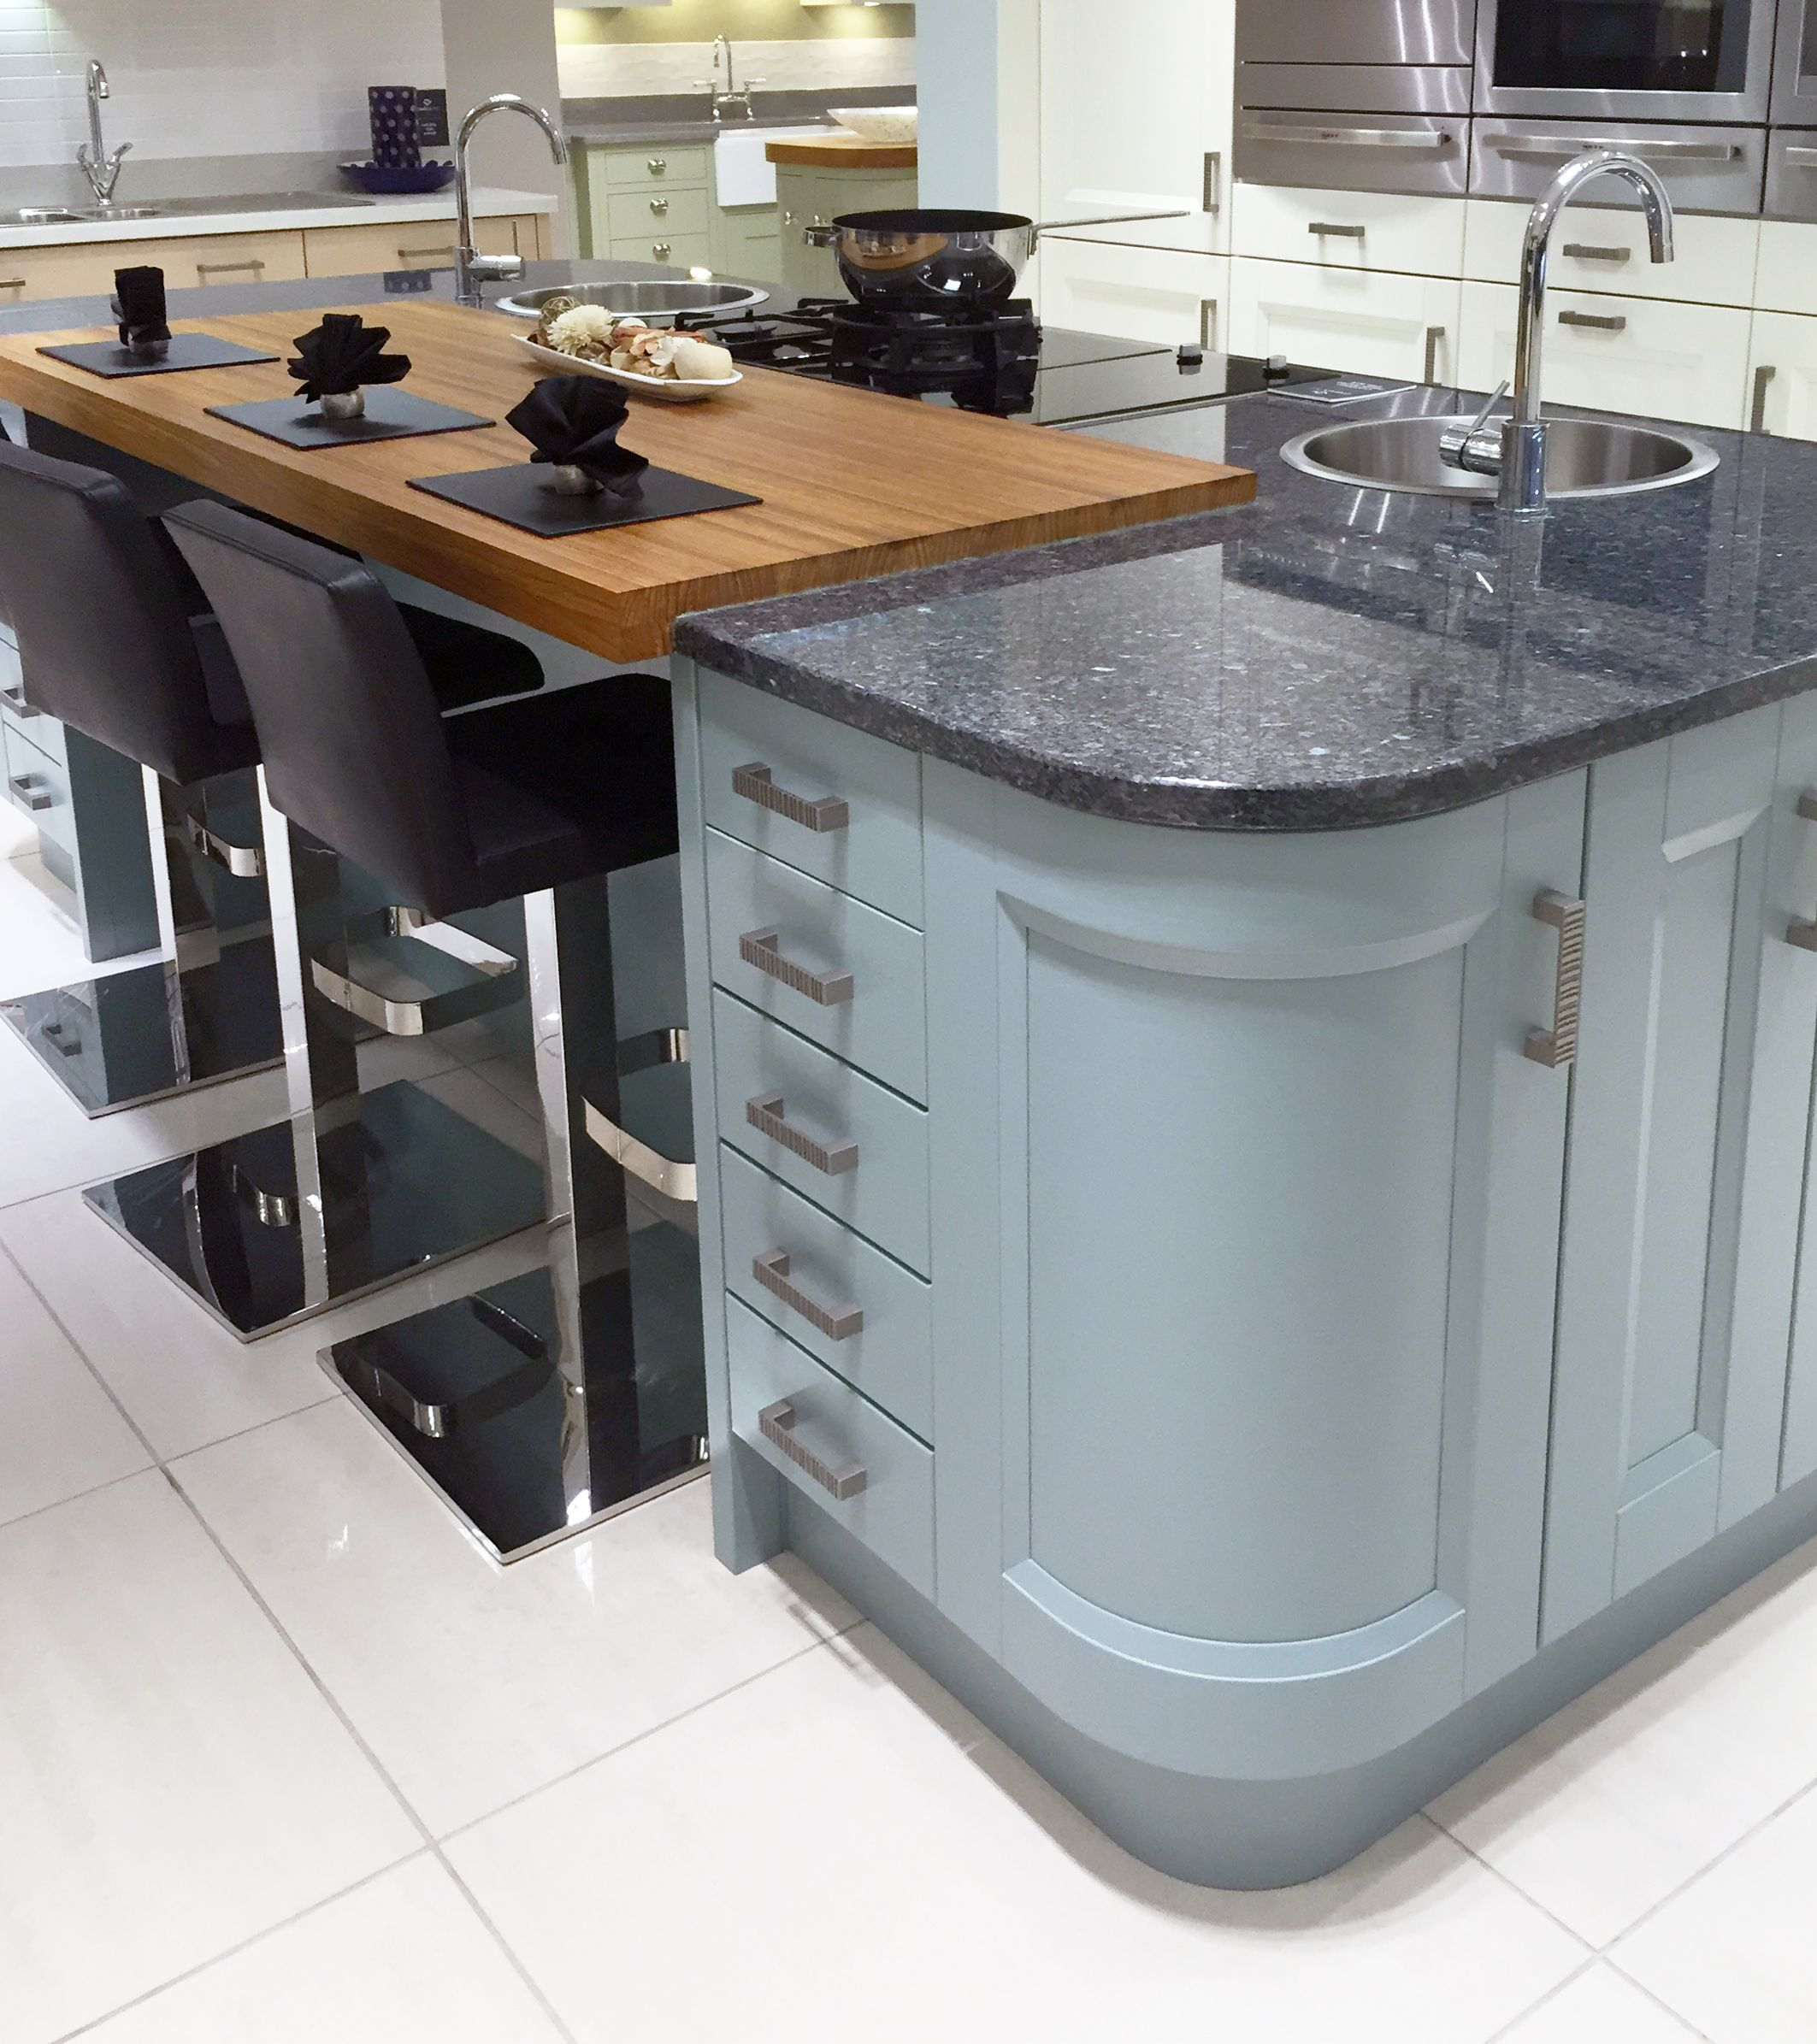 Contemporary kitchen island design in blue, with curved ...